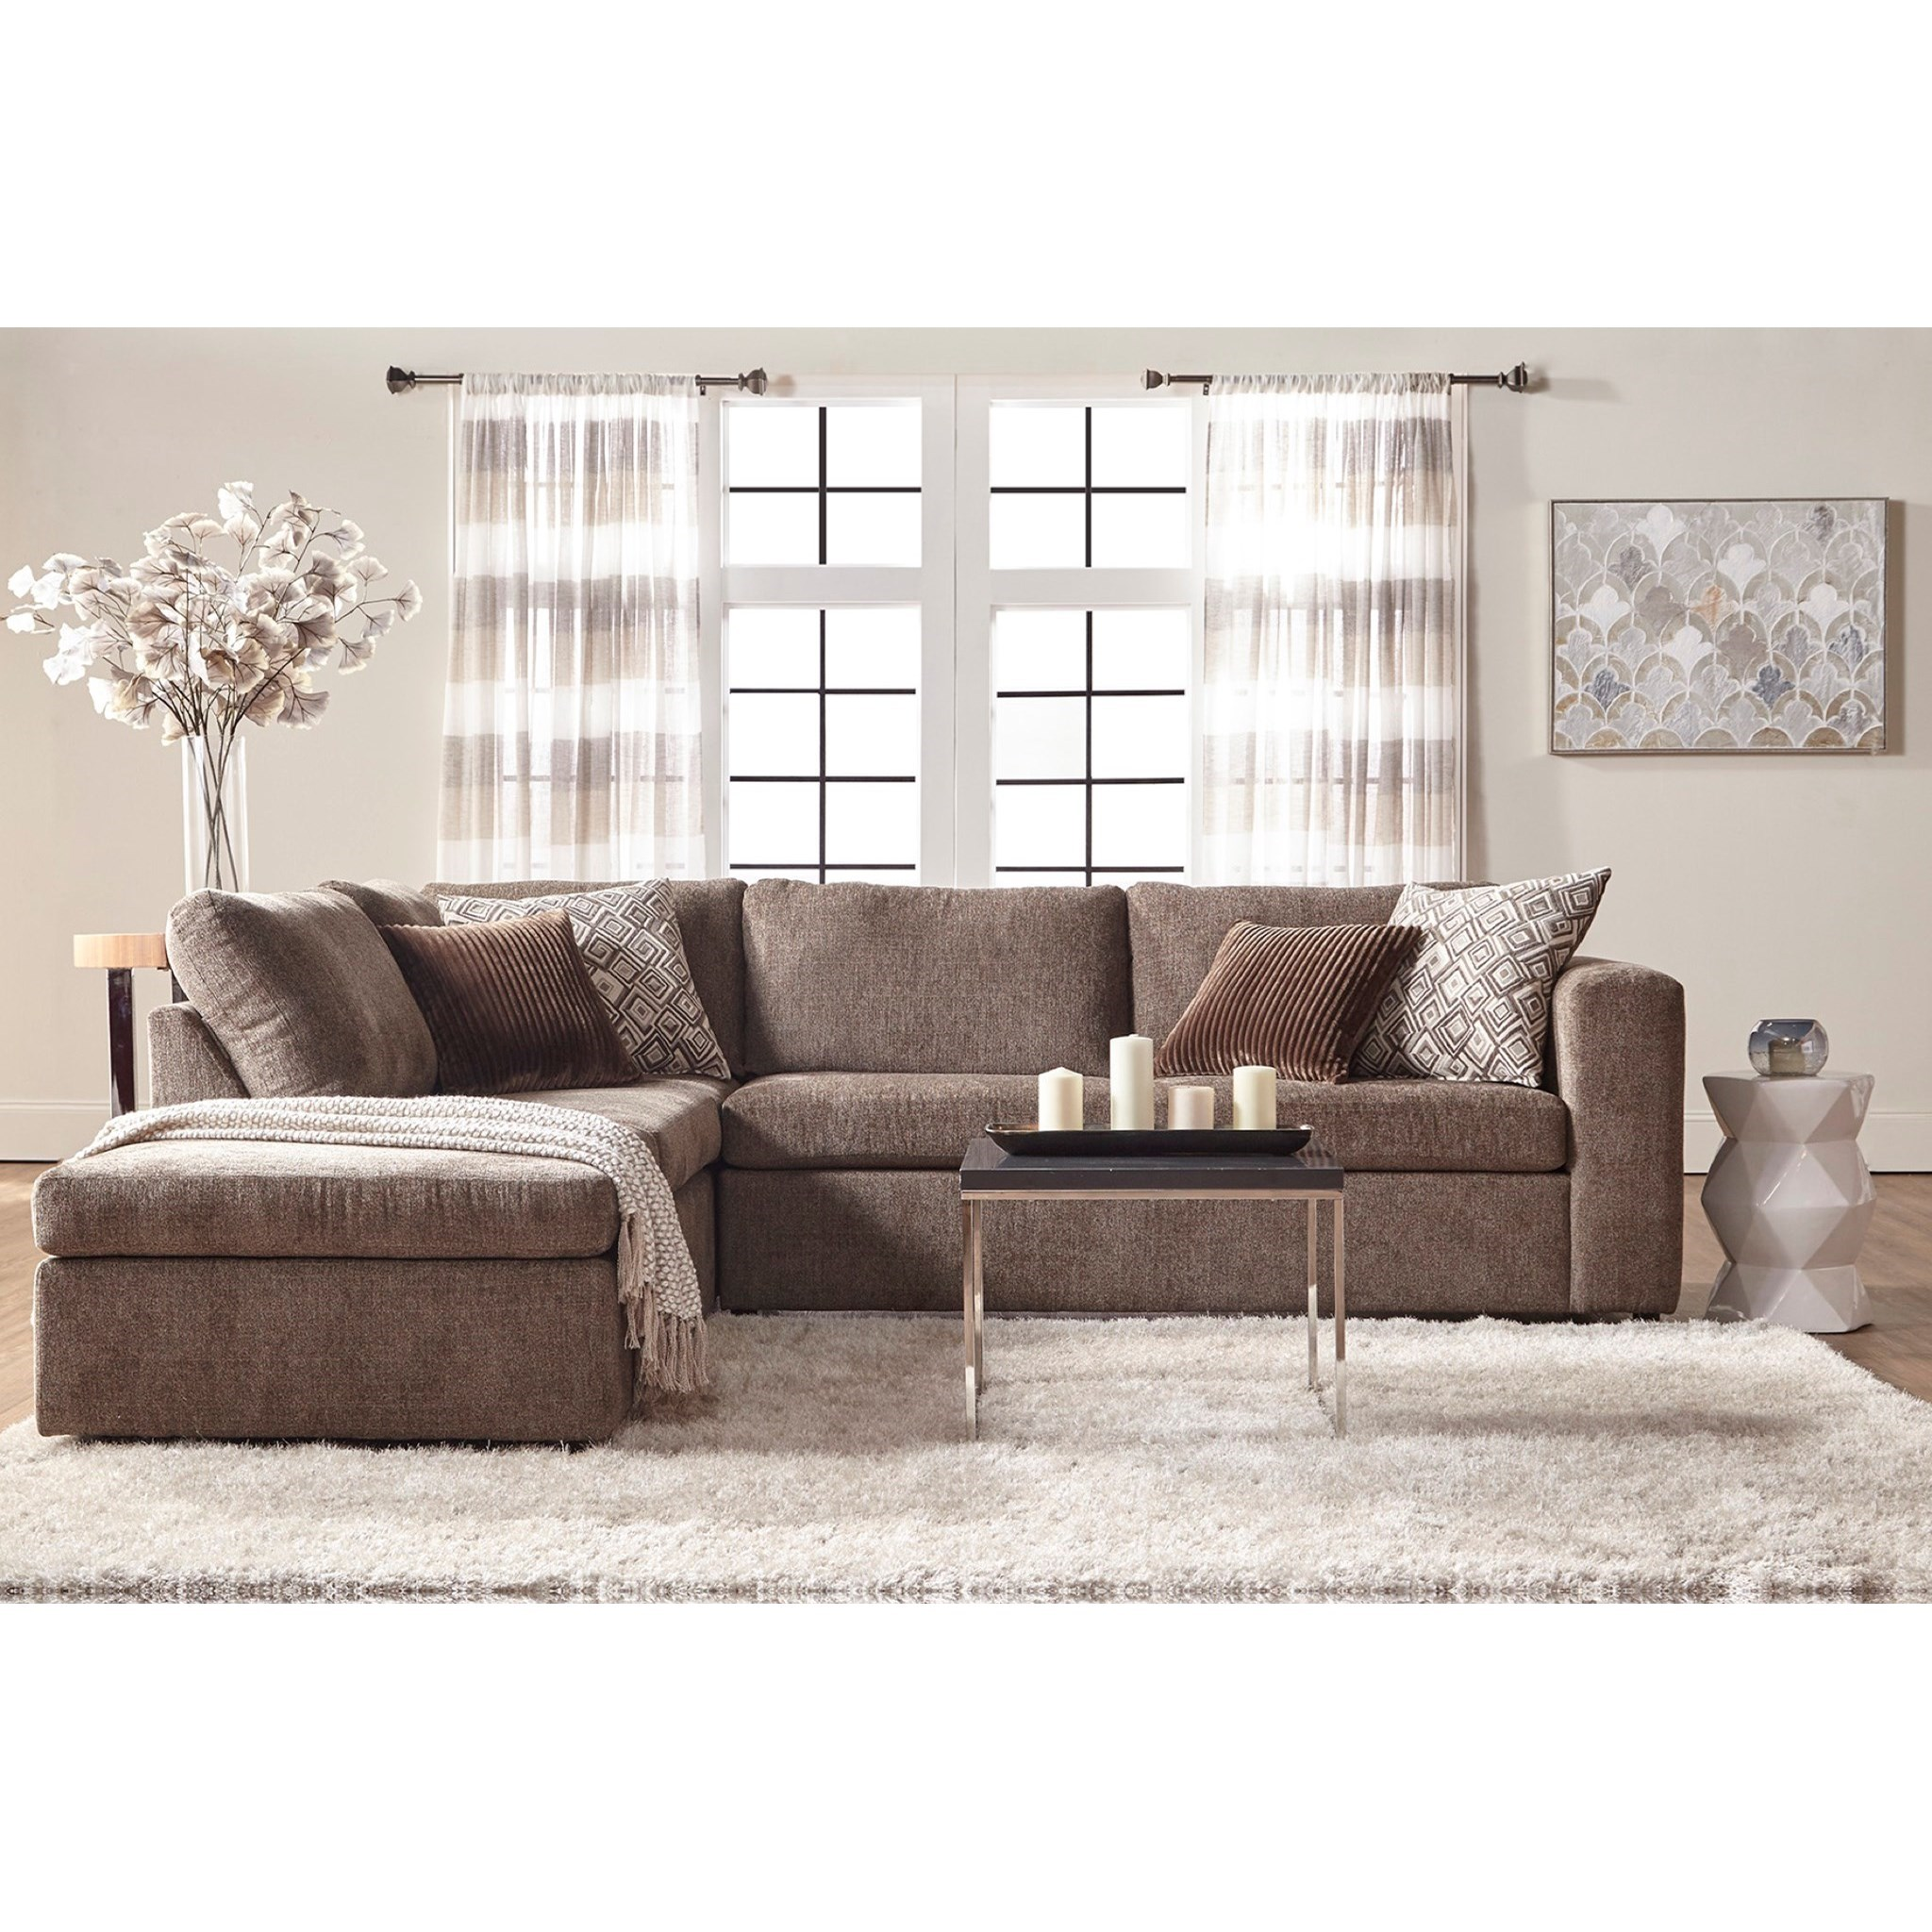 Serta Upholstery Angora Casual Contemporary Sectional Sofa with ...